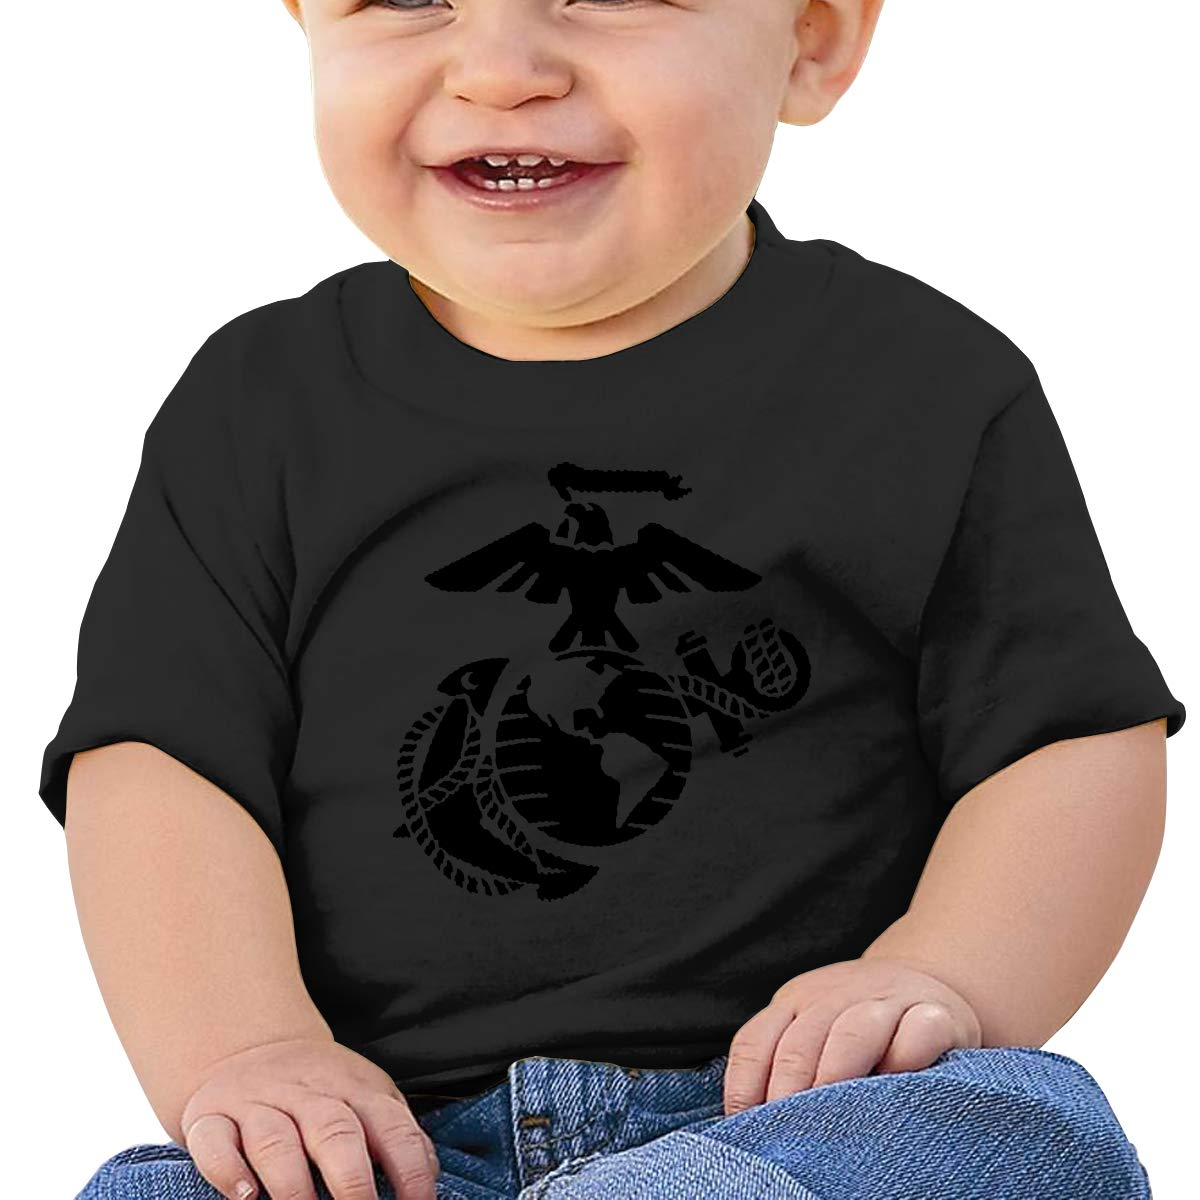 USMC United States Marine Corps Toddler Short-Sleeve Tee for Boy Girl Infant Kids T-Shirt On Newborn 6-18 Months